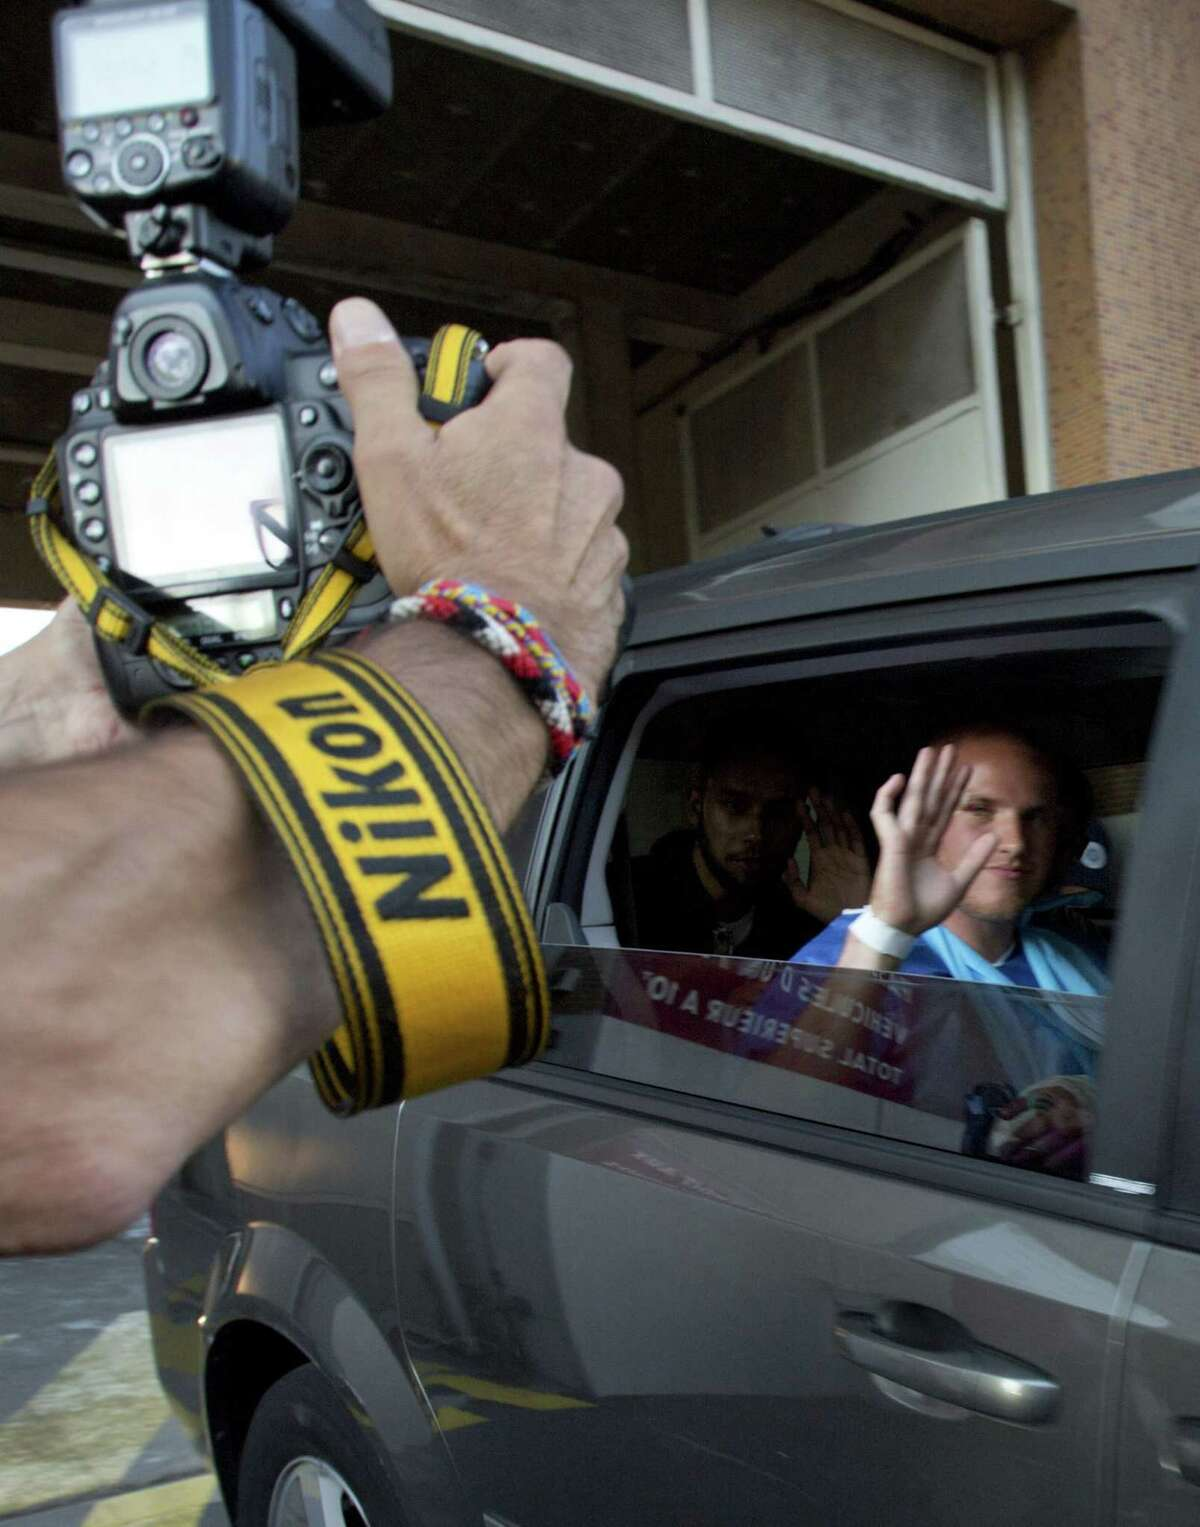 U.S. Marine Spencer Stone waves as he leaves the police station in Arras, northern France, Saturday, Aug. 22, 2015. A gunman prepared to open fire with an automatic weapon on a high-speed train traveling from Amsterdam to Paris Friday, wounding several people before being subdued by passengers, officials said. Spencer Stone is one of the passengers credited with subduing the gunman.